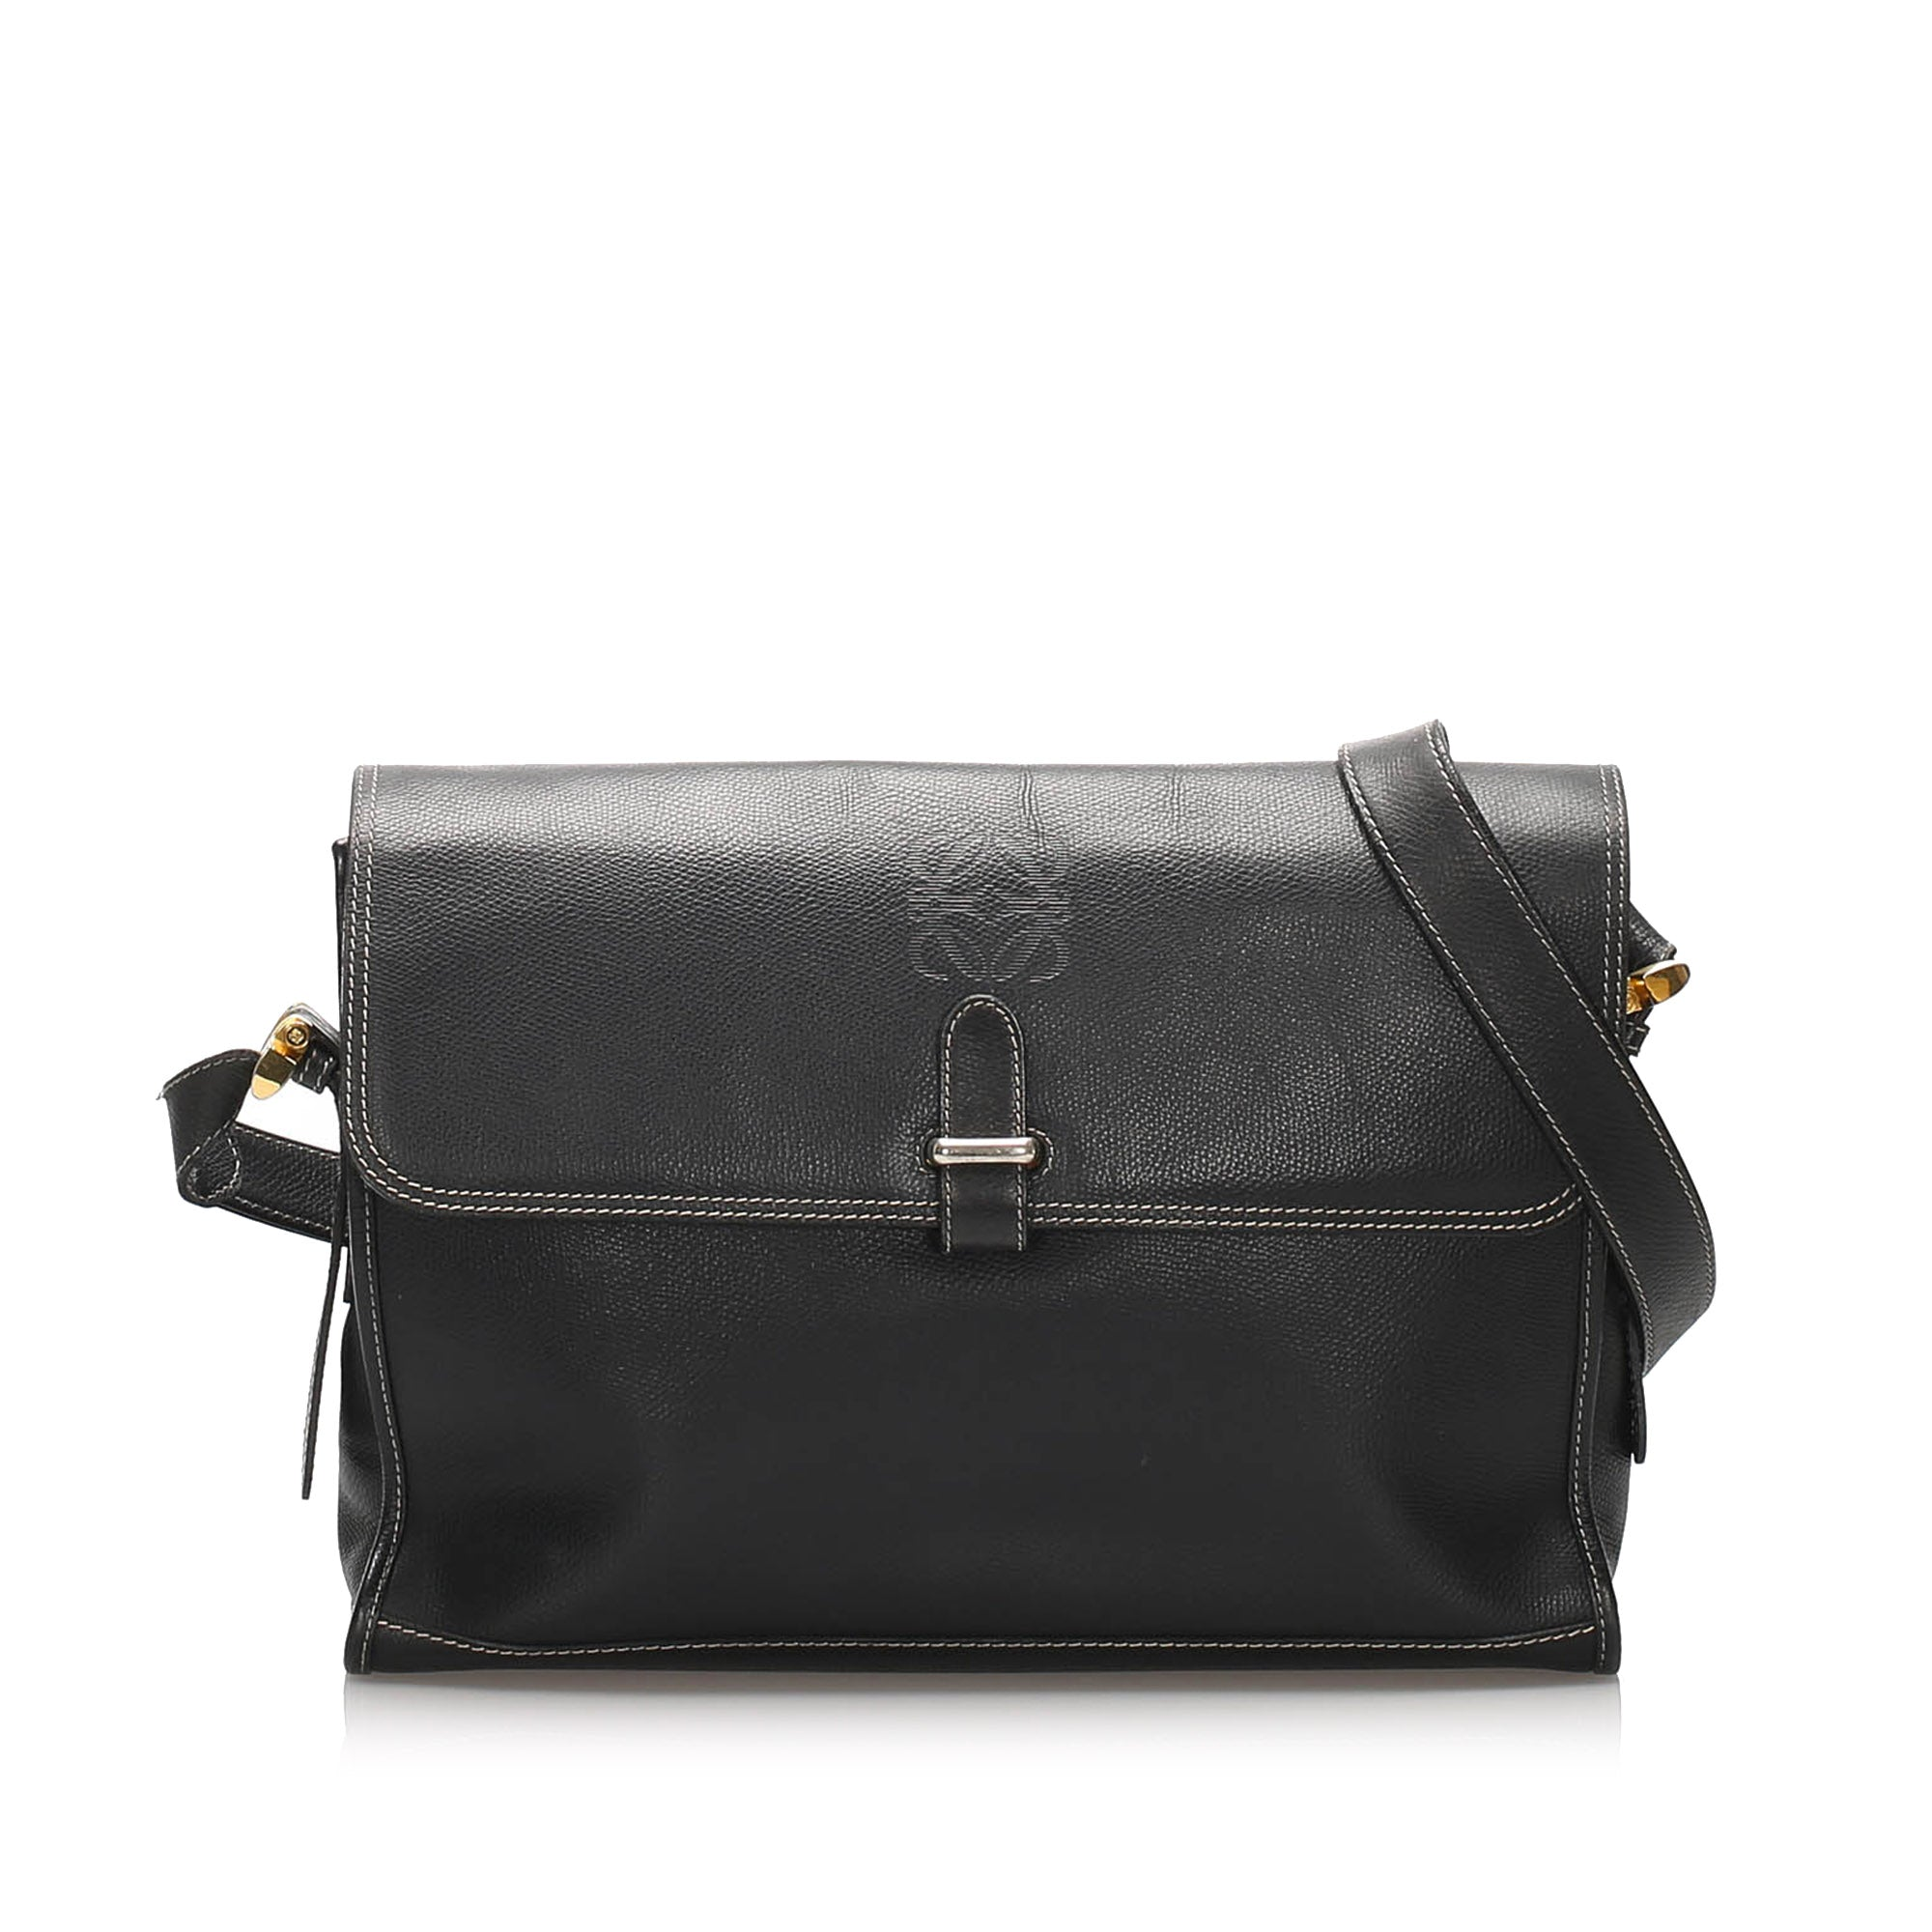 Loewe Black Leather Crossbody Bag